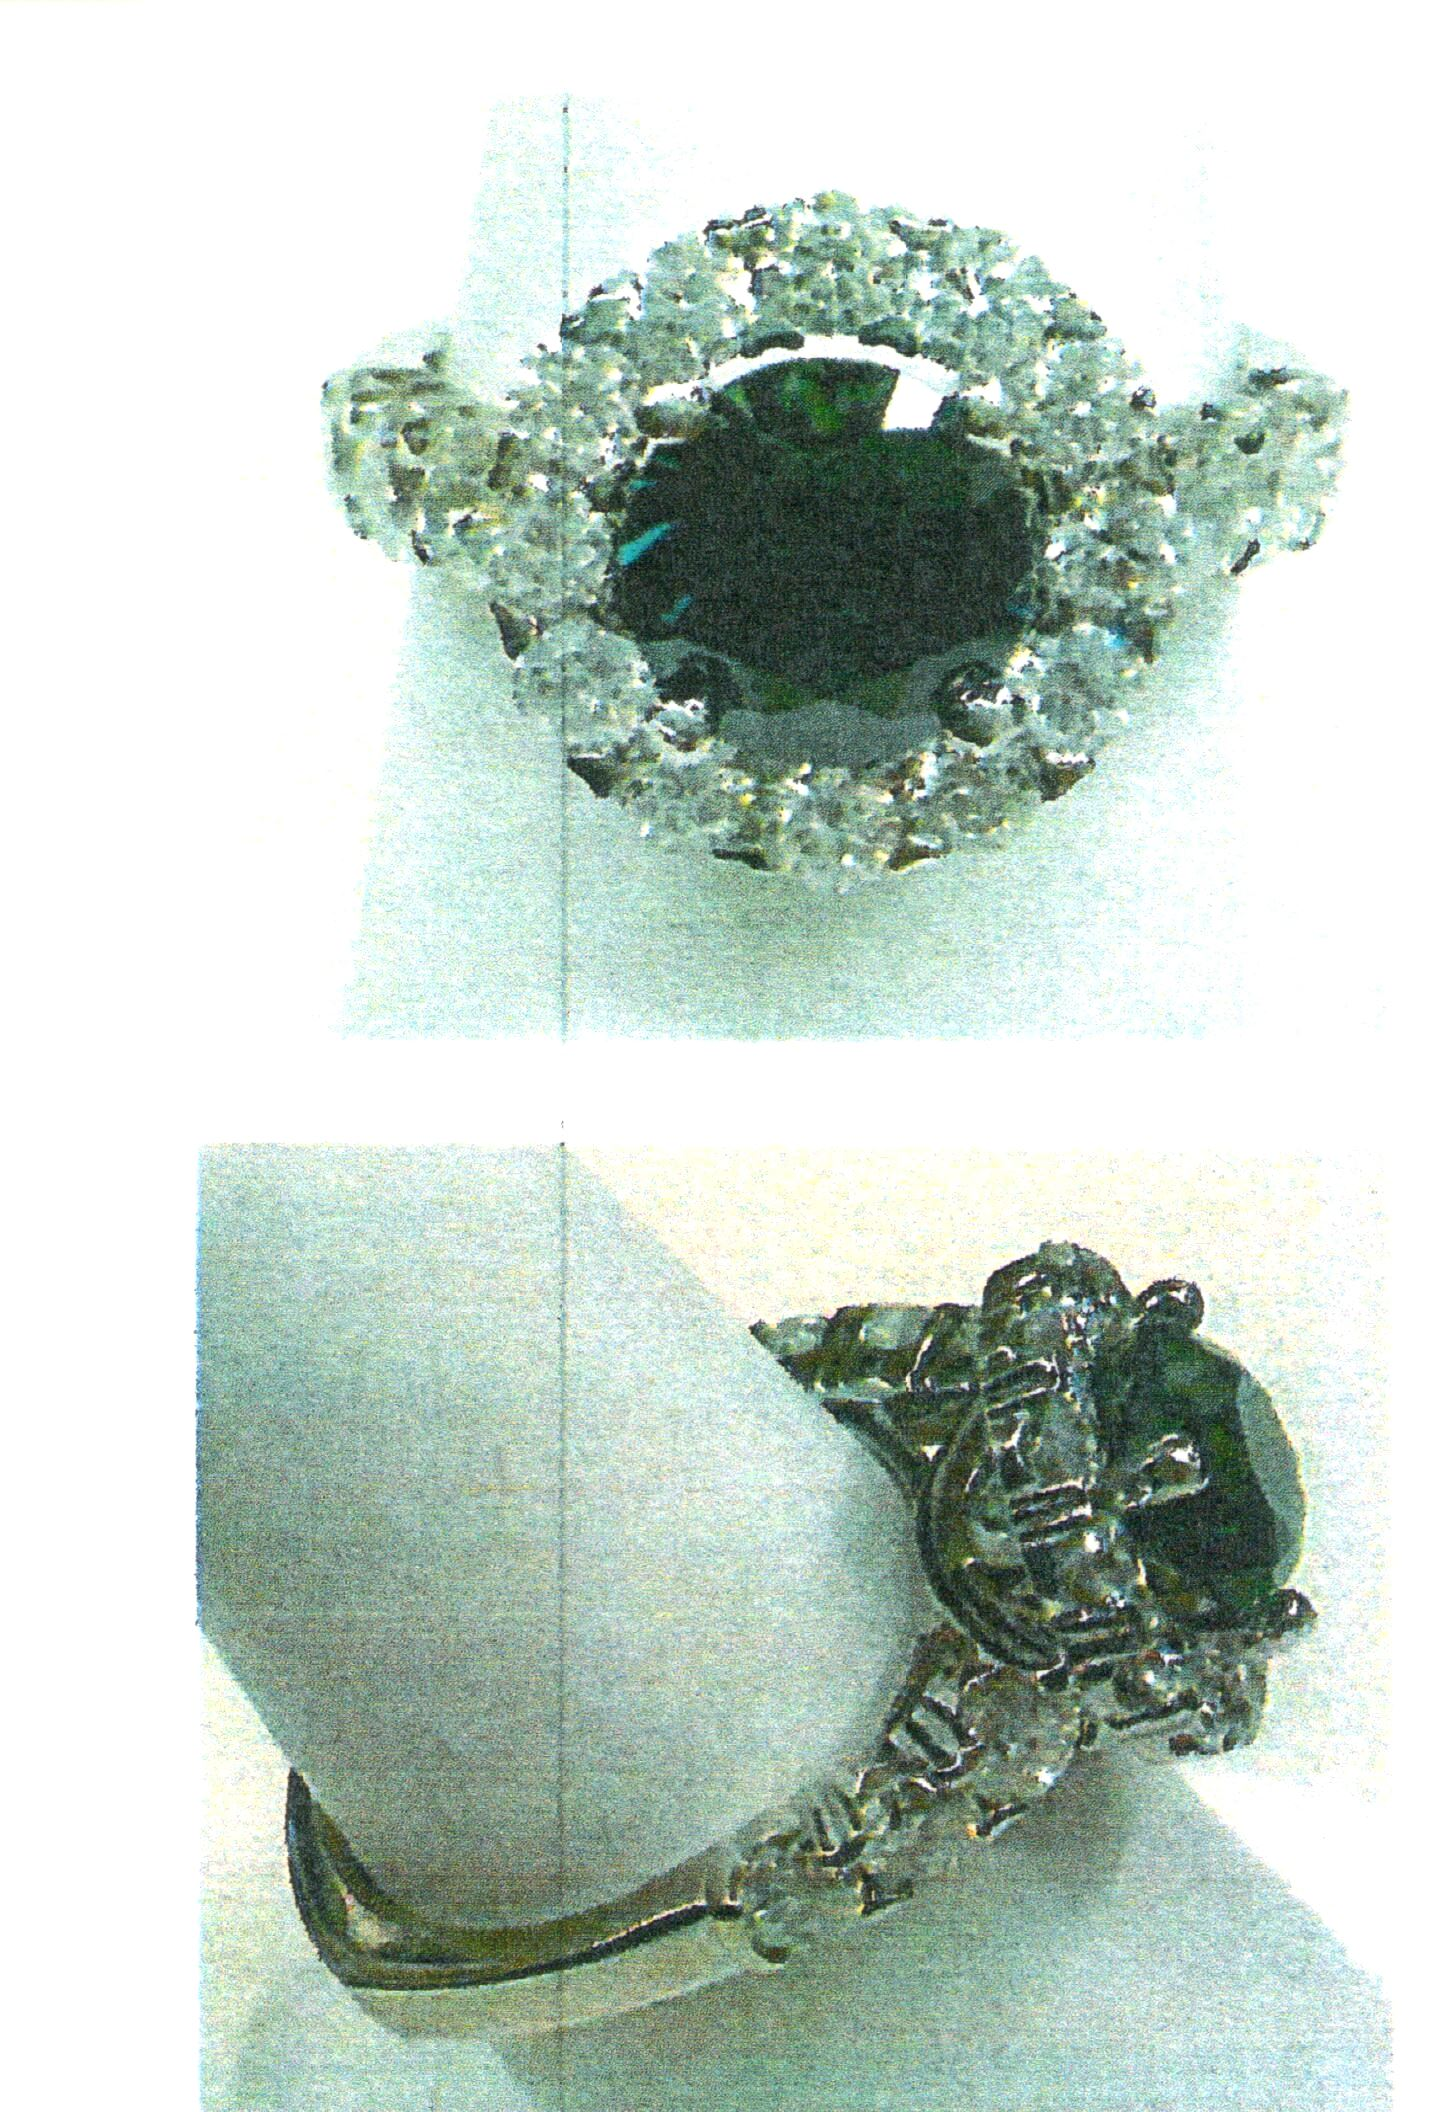 287012f84 14kt white gold ring, size 6.5, trademark CARO74, 2.25ct green sapphire, 12  diamonds total 0.91ct. (Photo)